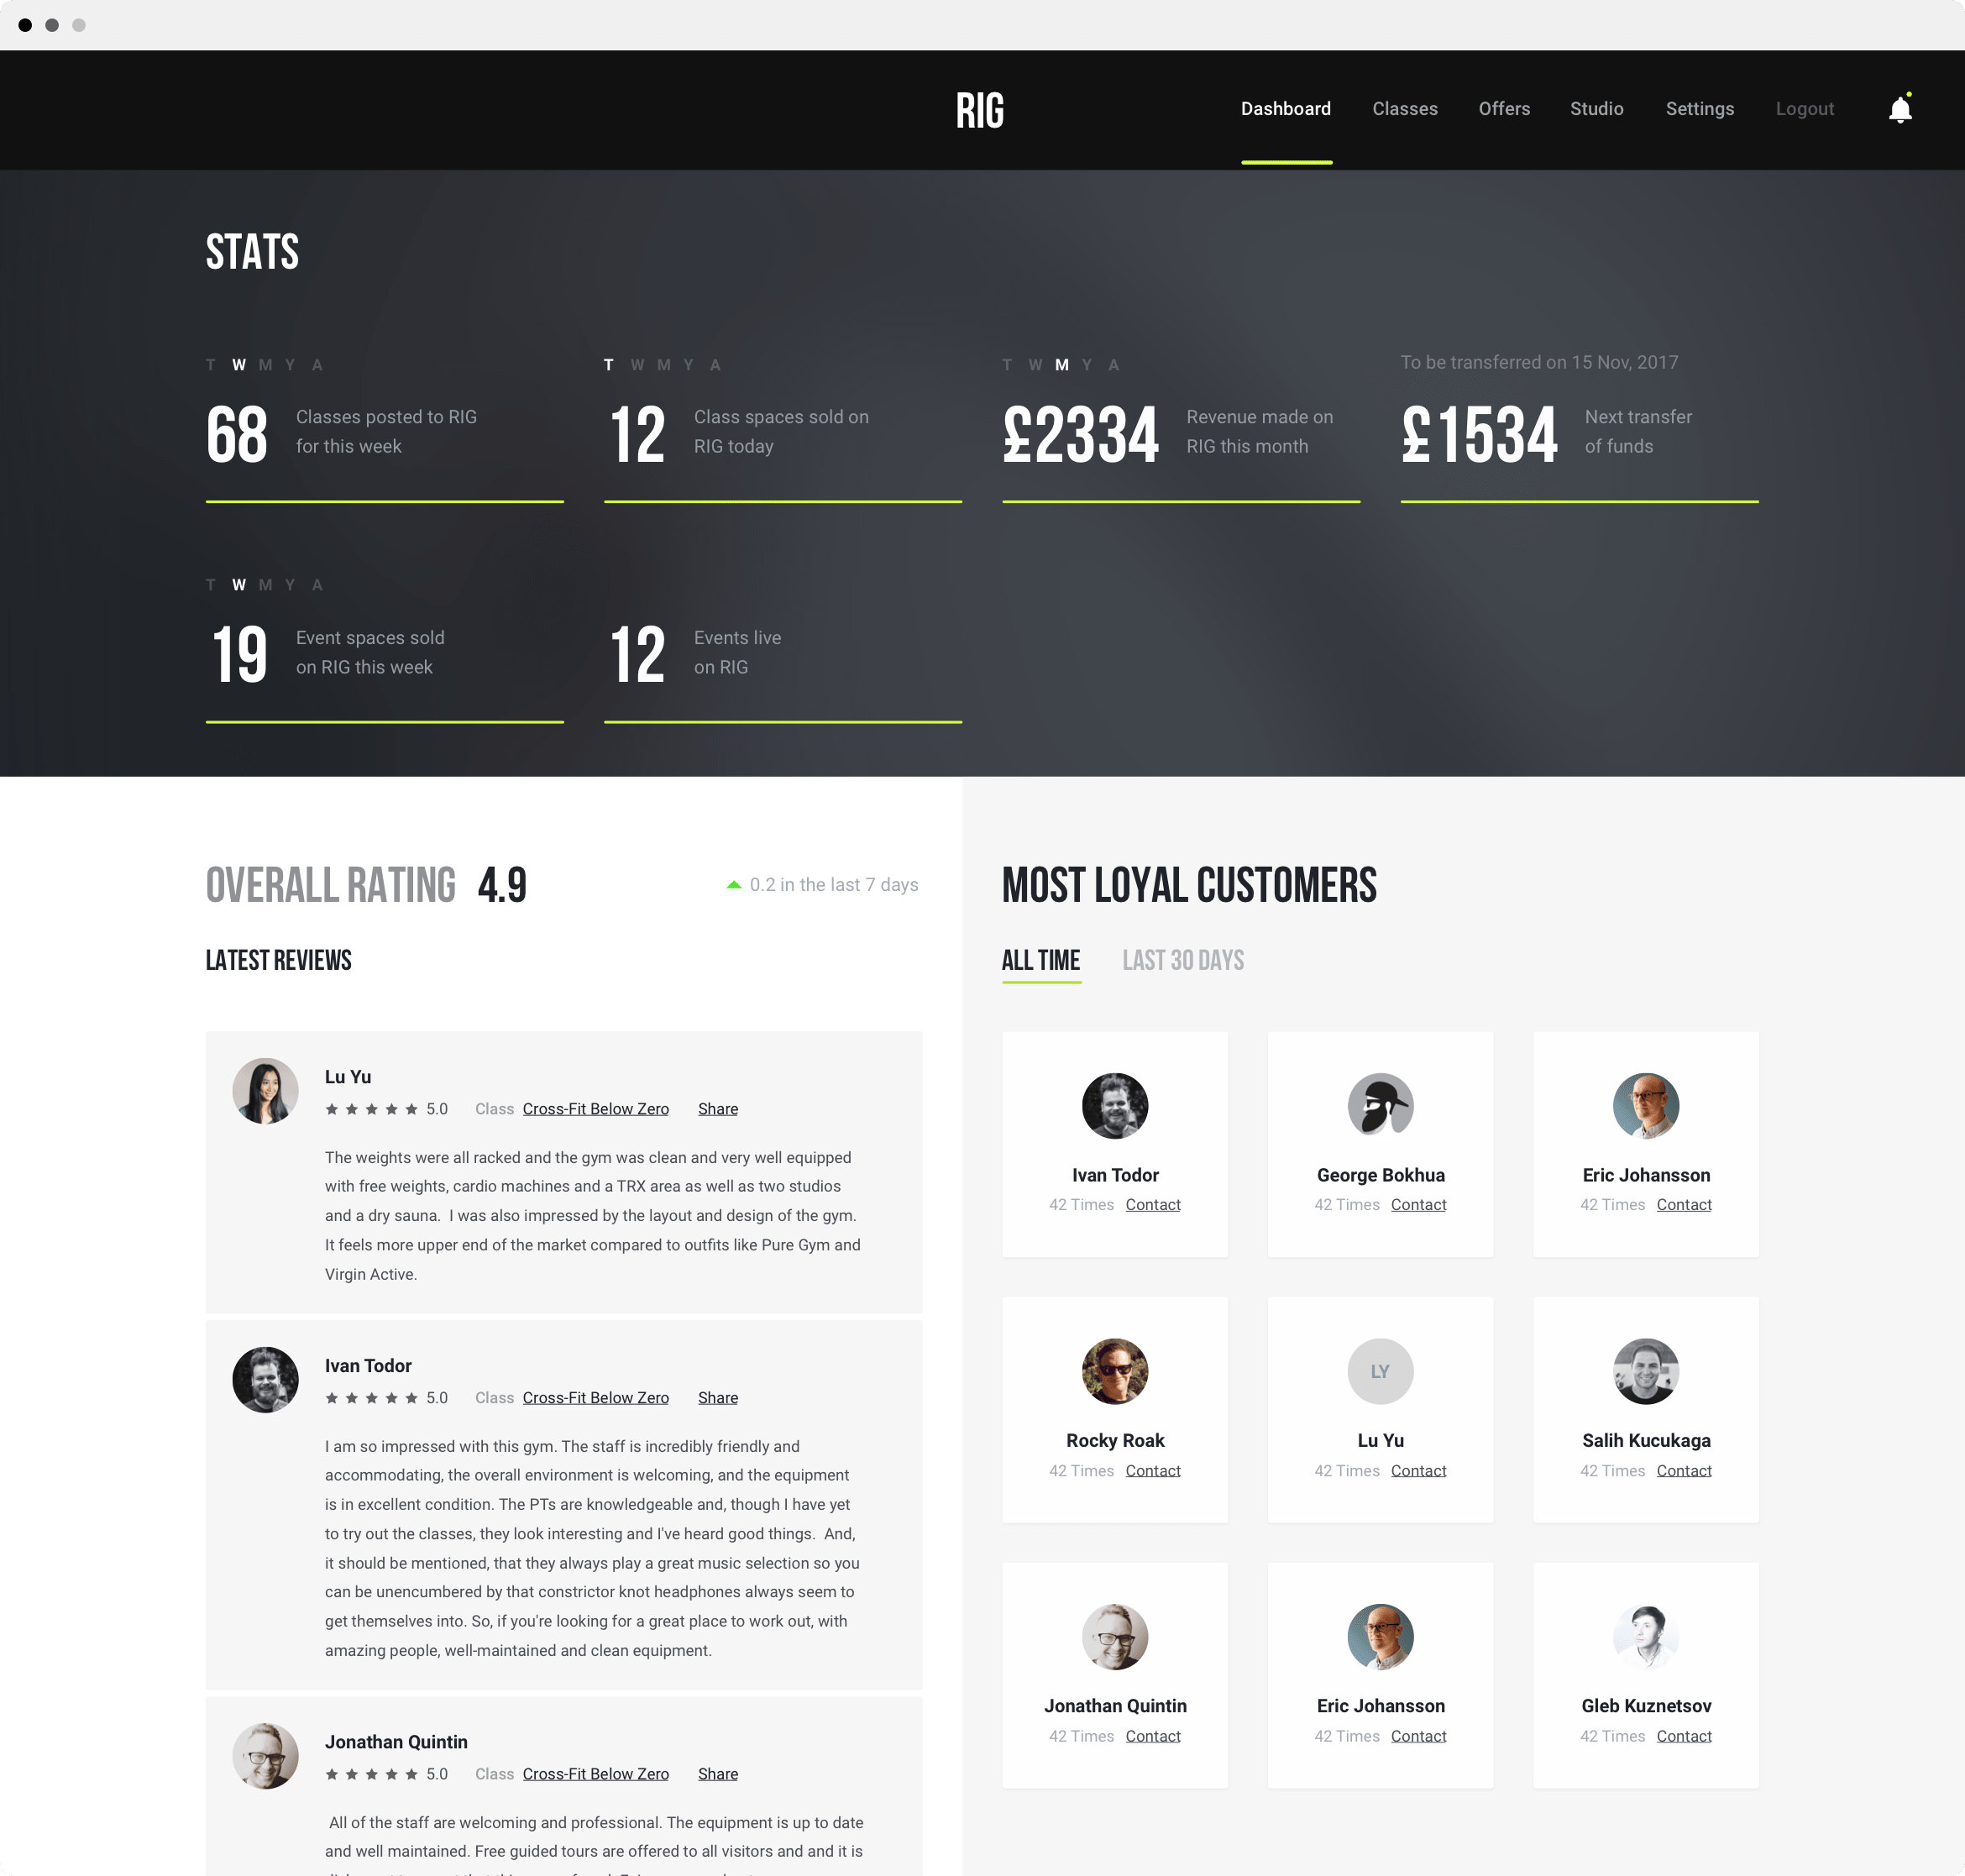 rig_web_01_dashboard@2x